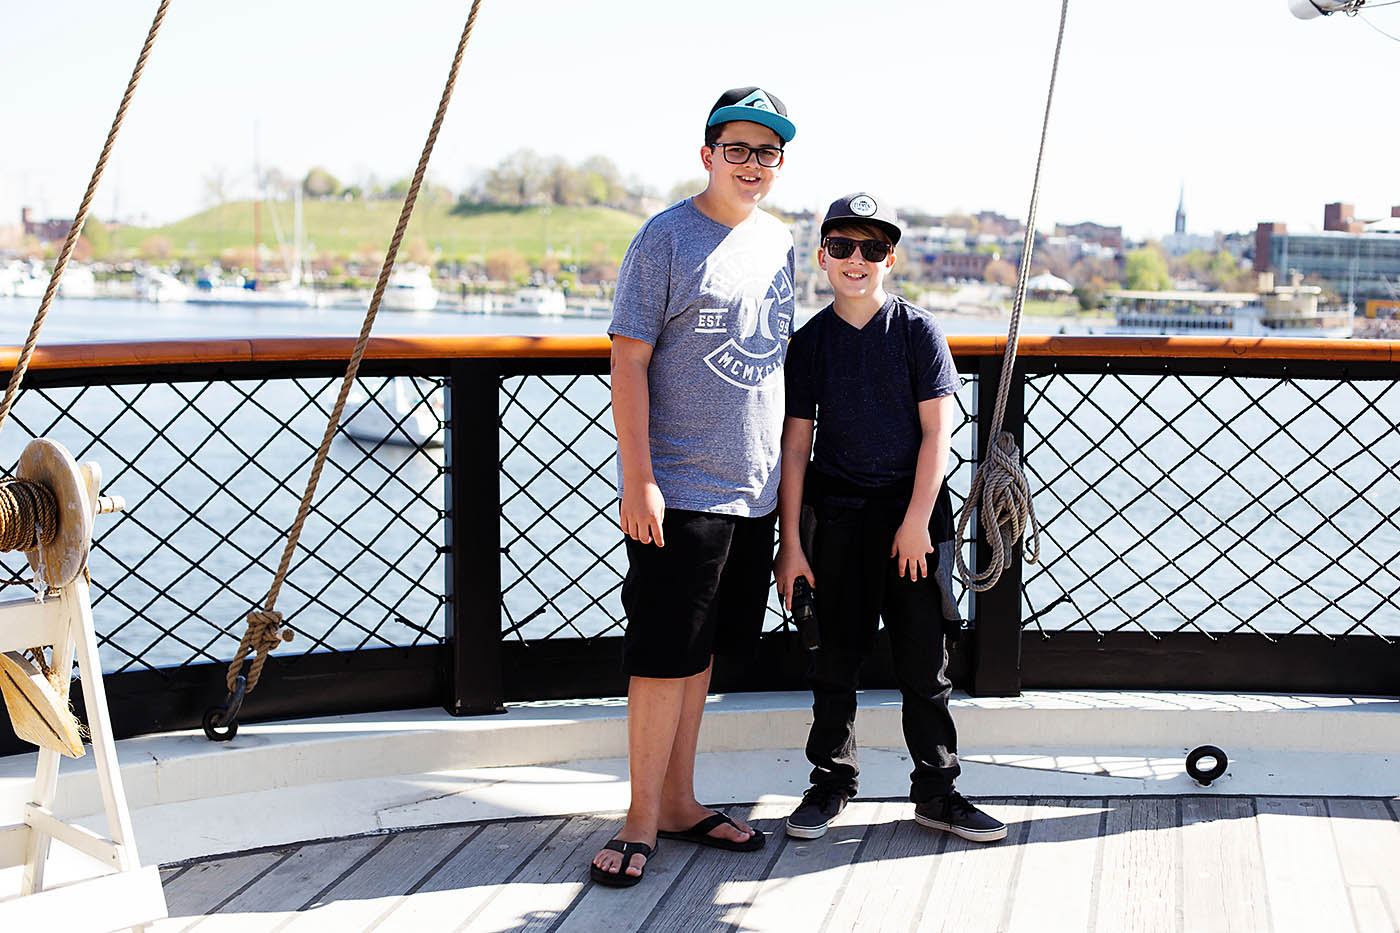 DC trip with older kids - part 2 at allfortheboys.com